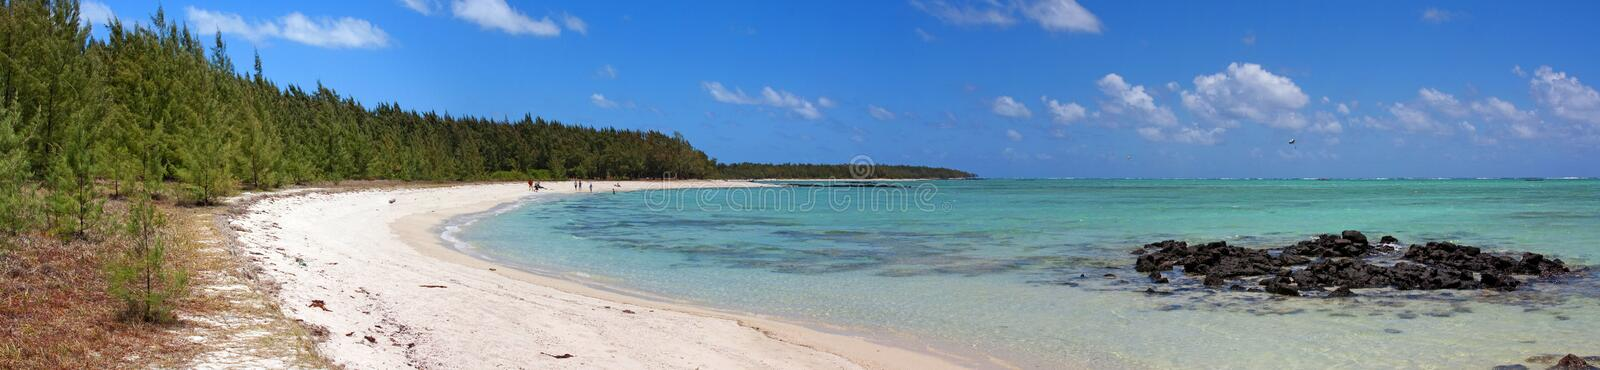 Ile Aux Cerfs. An island in the east of Mauritius, photographed in November 2010 stock images